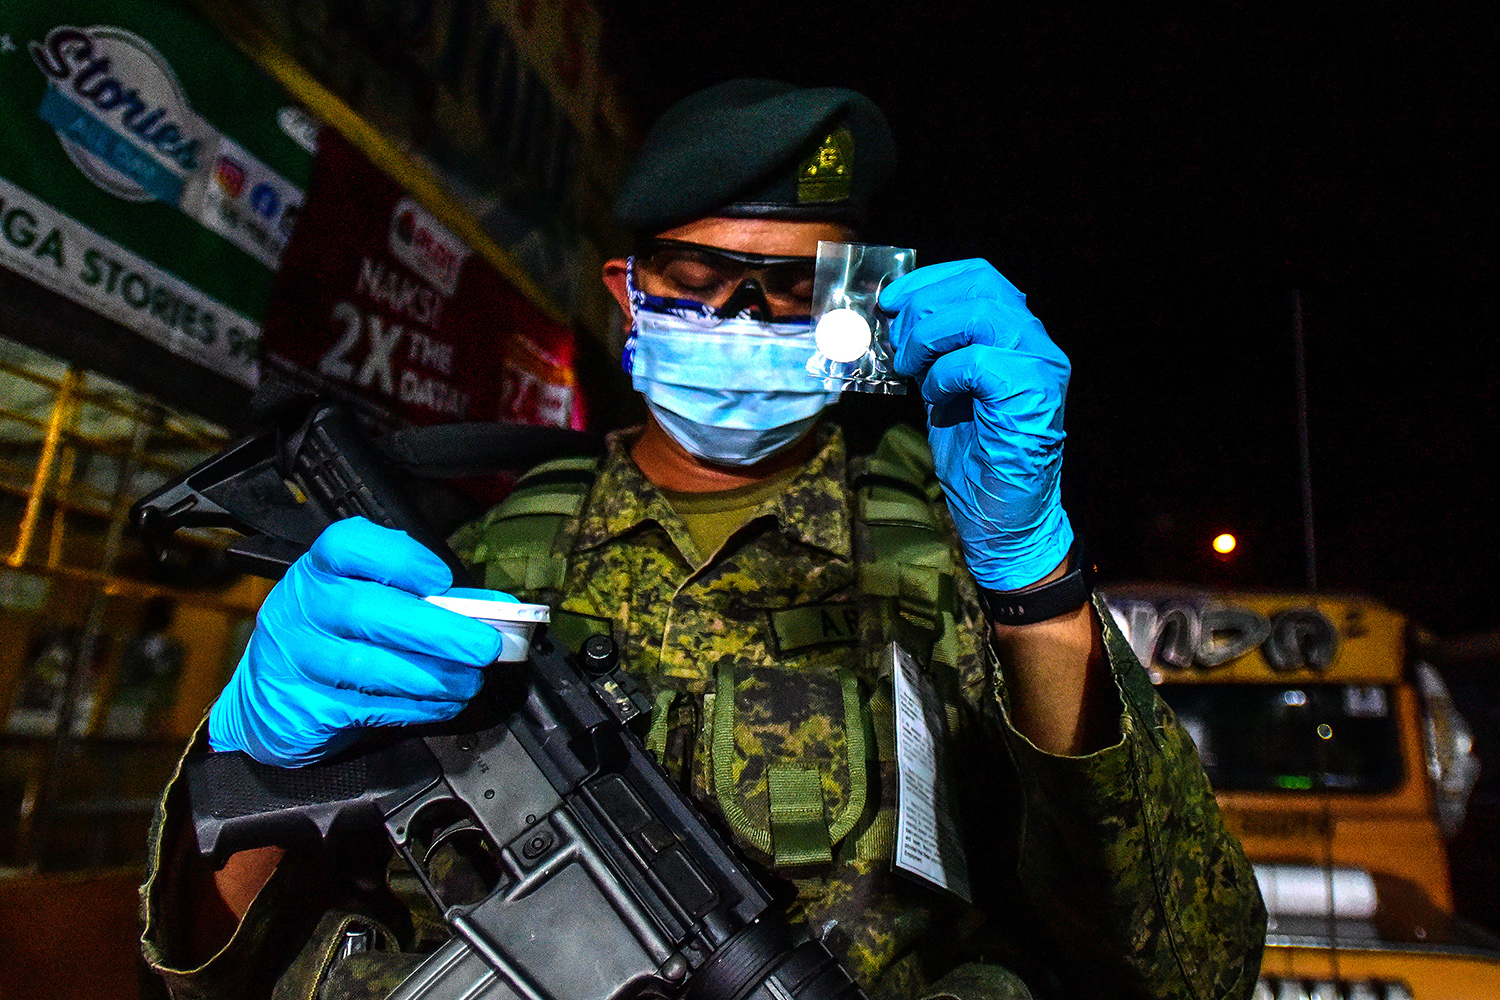 A member of the military takes Communion provided by the International Auxiliary Chaplaincy Association at a checkpoint in Manila, Philippines, as the city implements an enhanced community quarantine. MARIA TAN/AFP via Getty Images